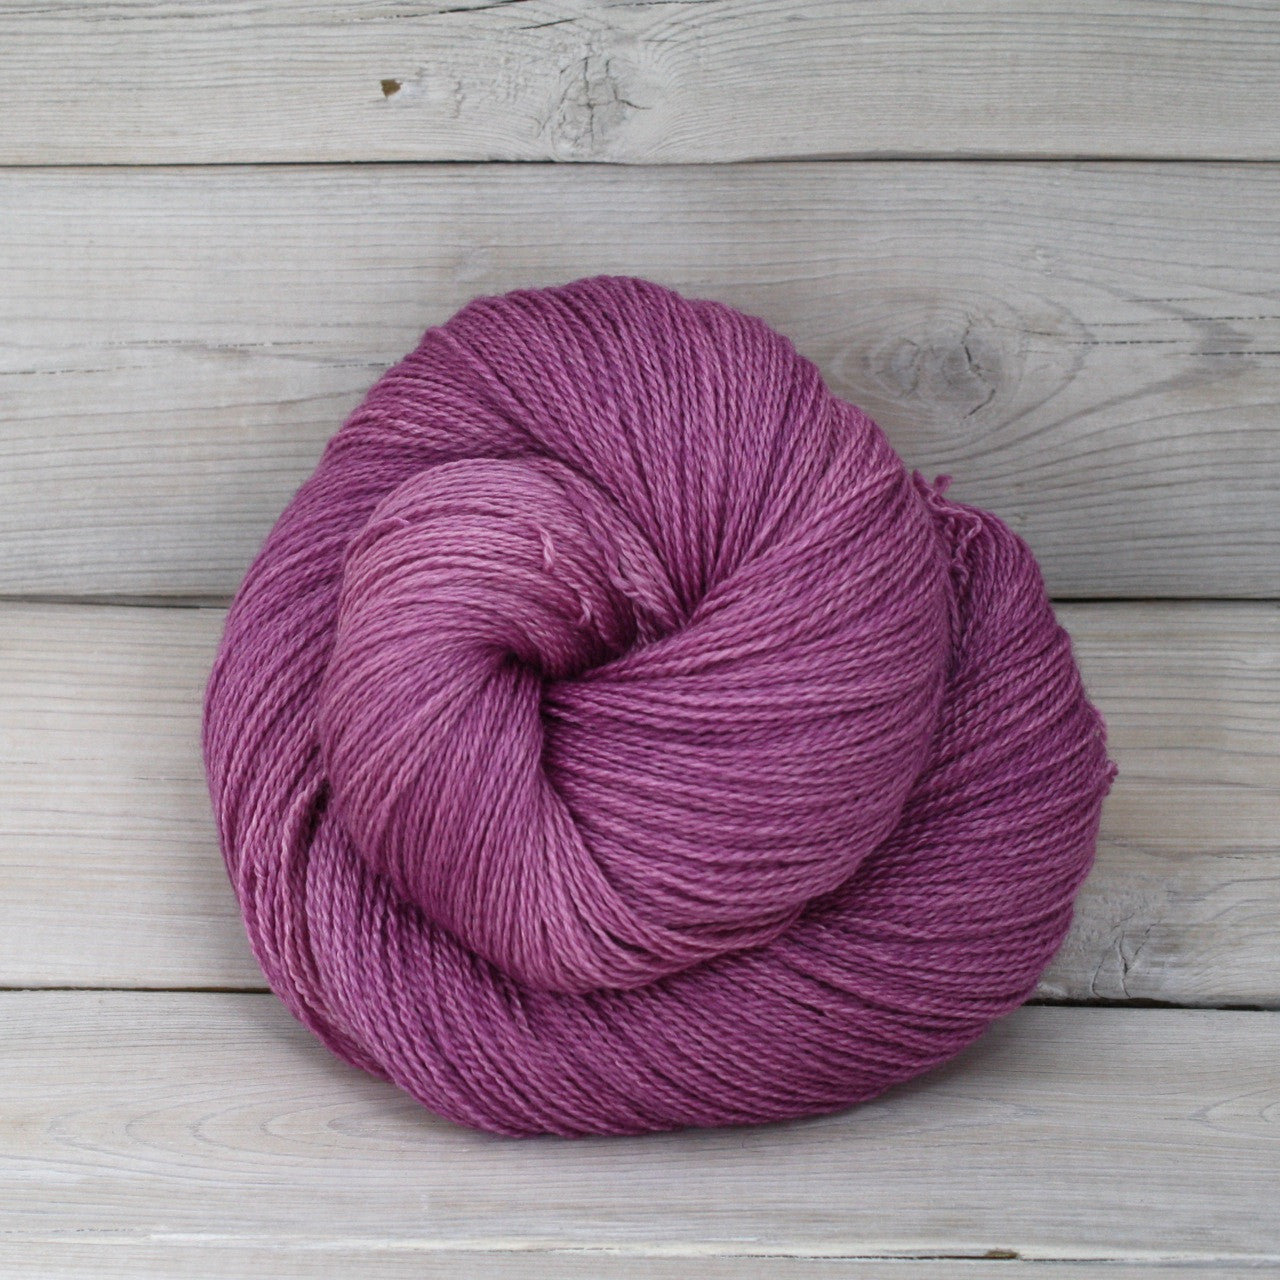 Starbright Yarn | Colorway: Radiant Orchid